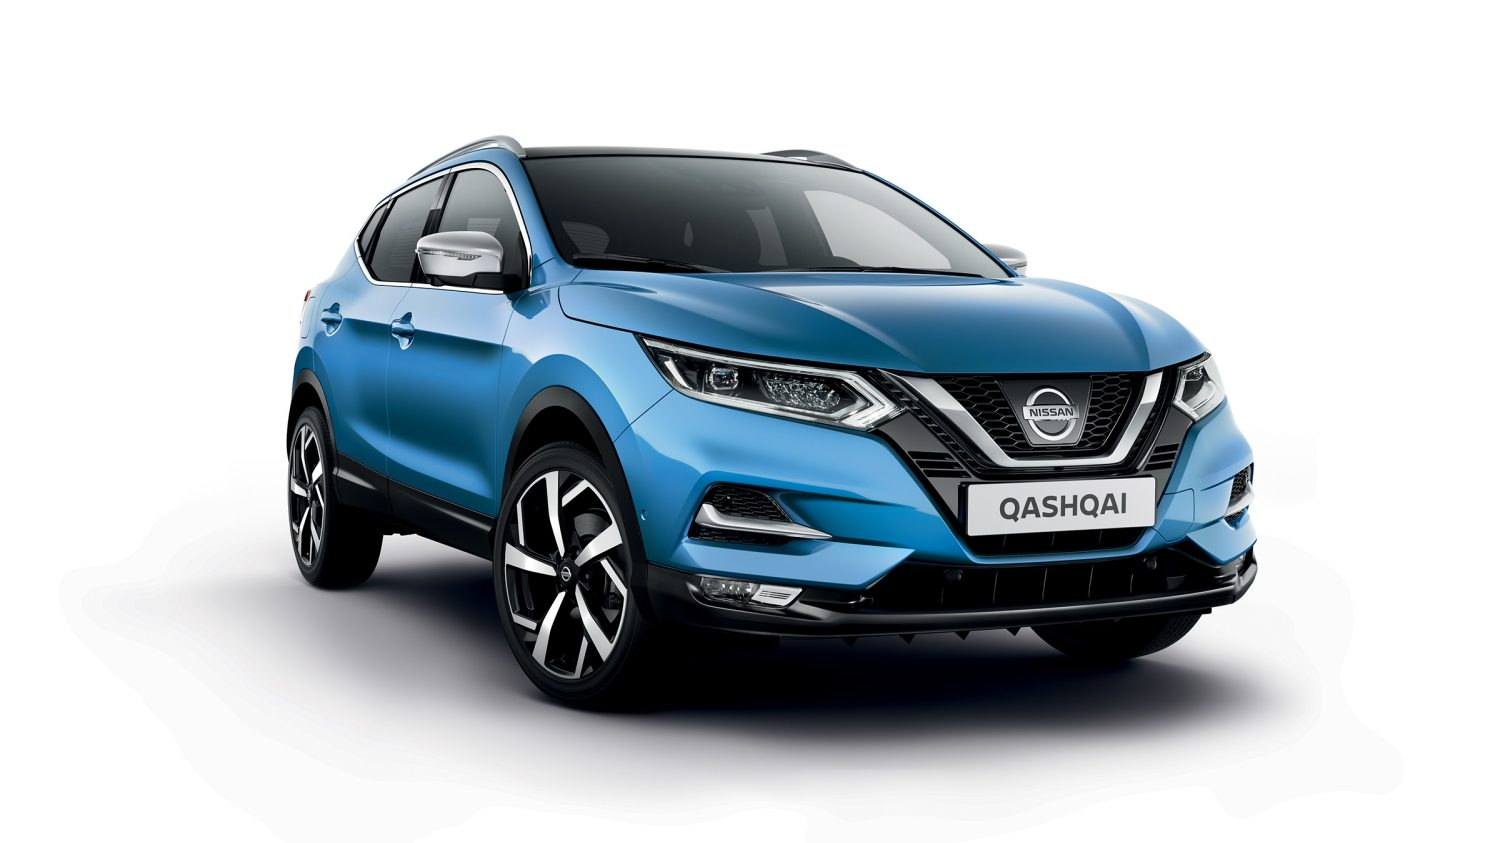 pre os e vers es novo nissan qashqai crossover 4x4 nissan. Black Bedroom Furniture Sets. Home Design Ideas